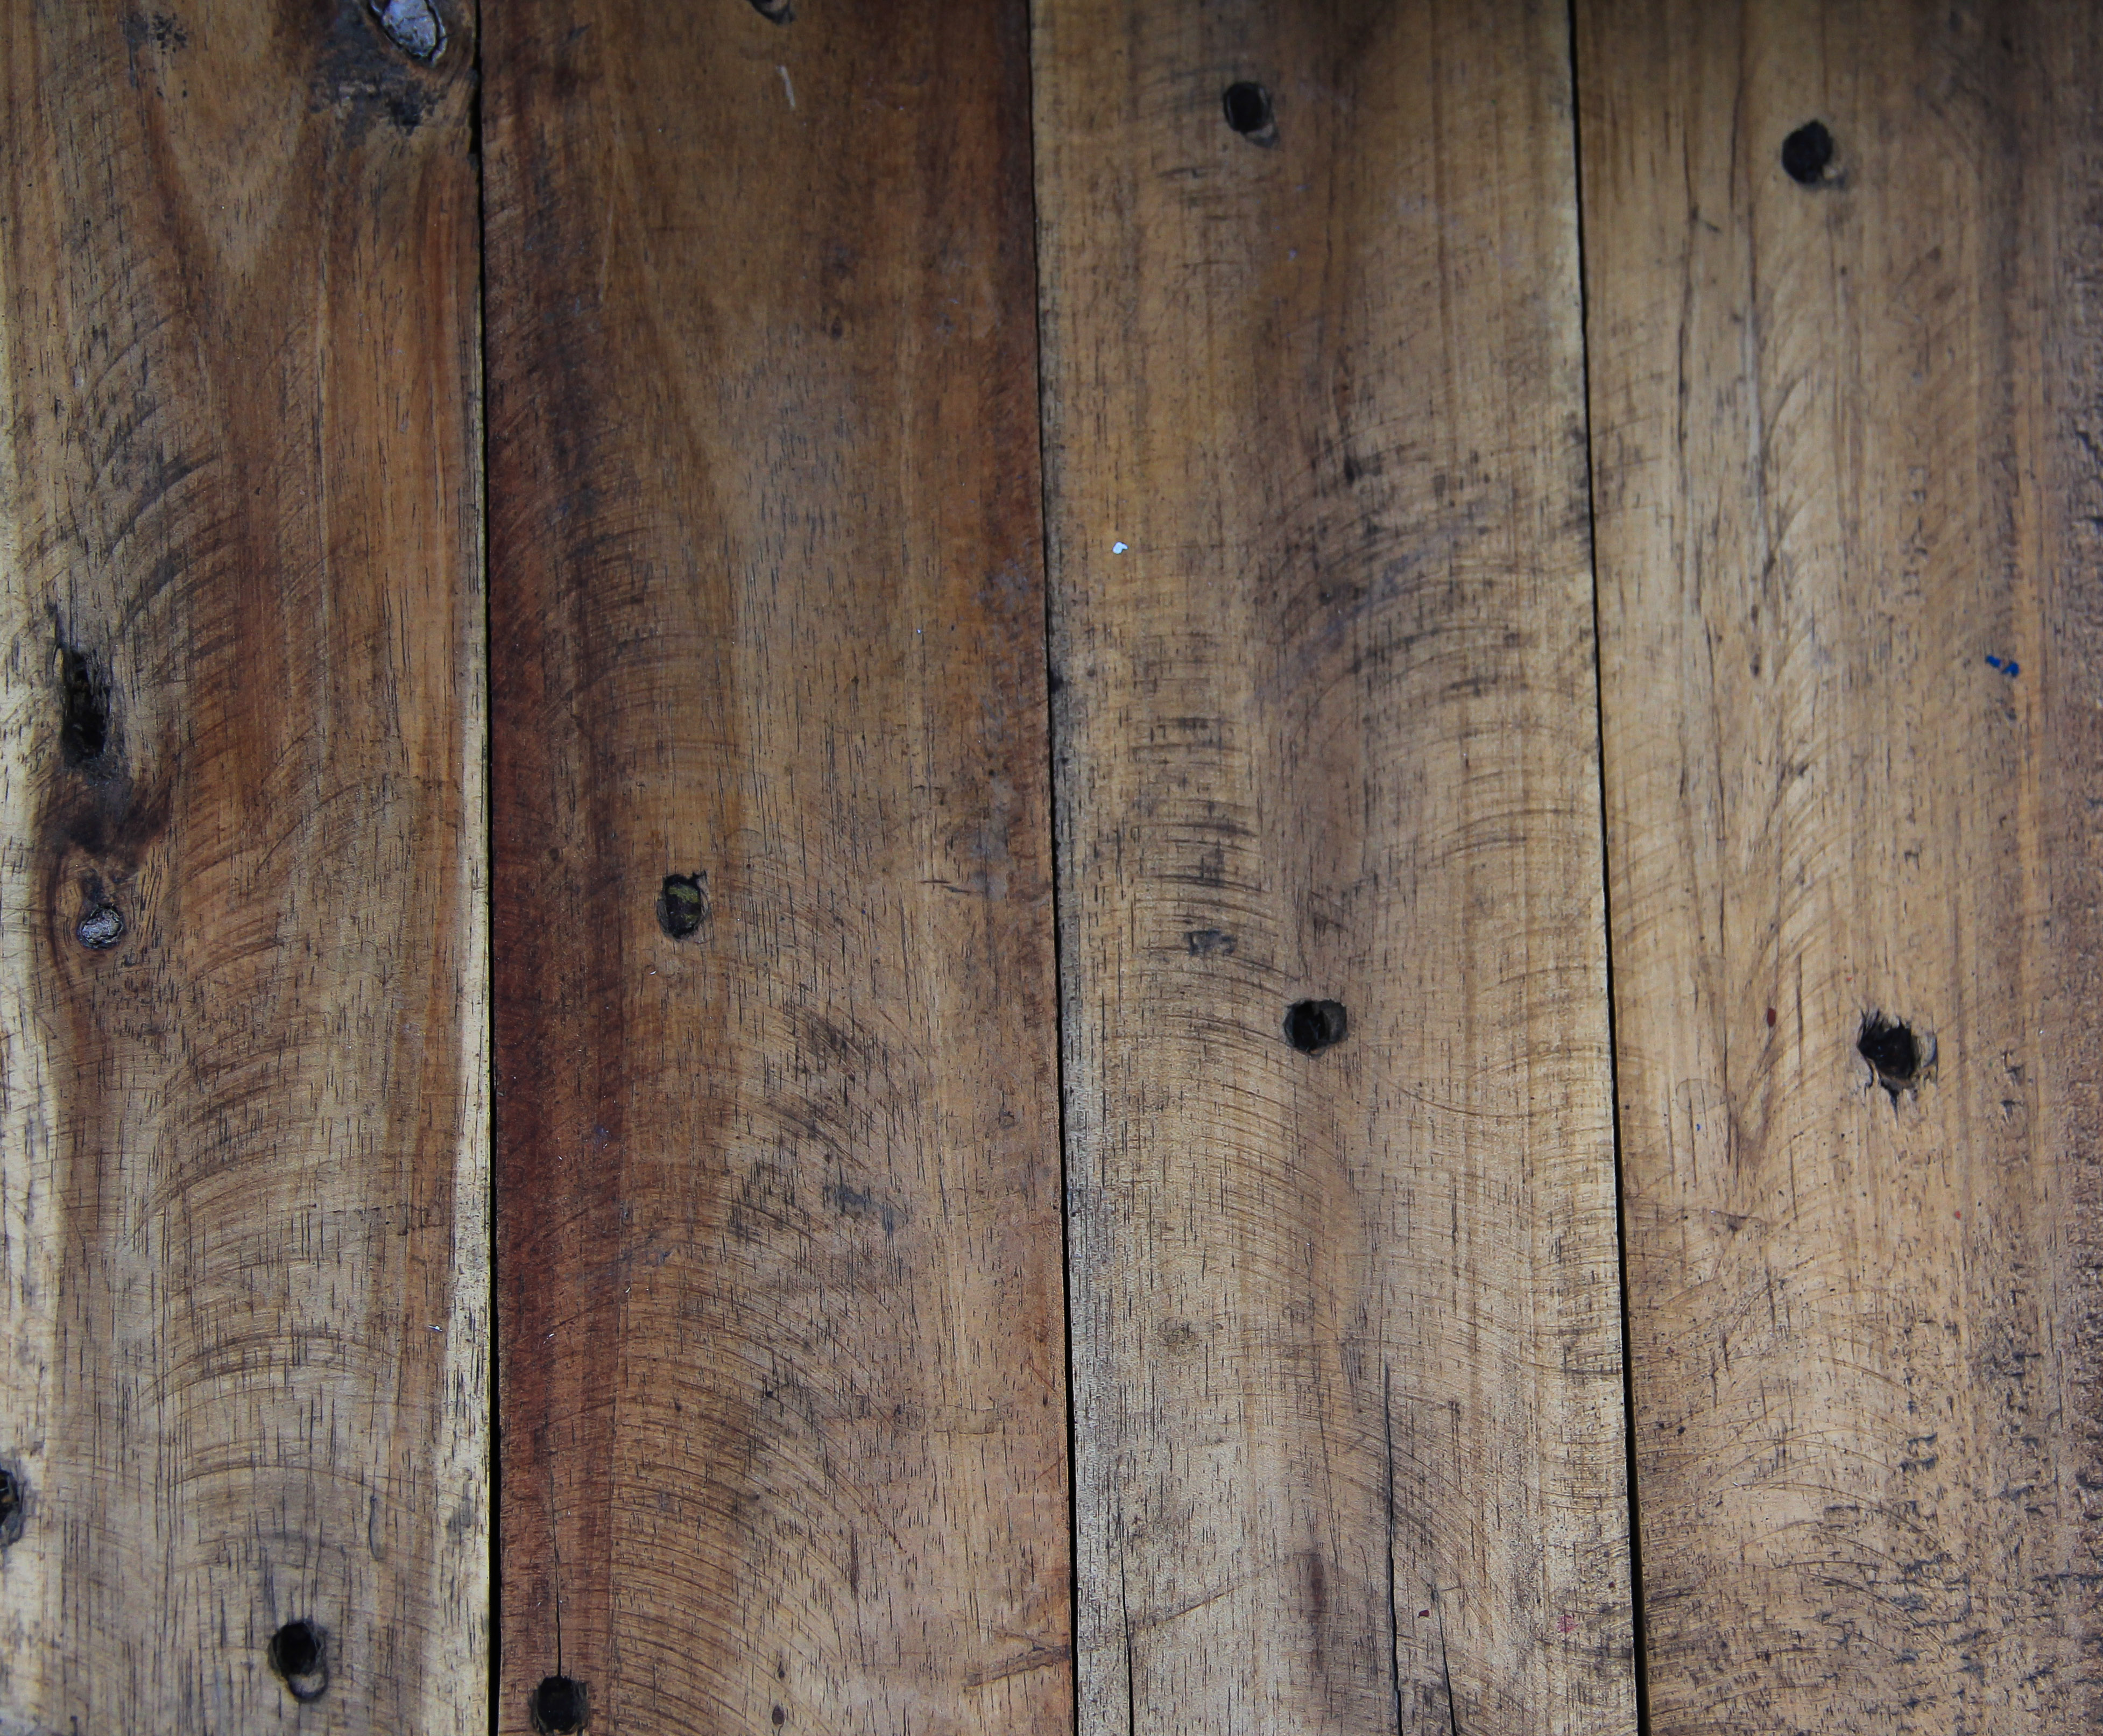 Wood Textures Grunge Texture Rough Knotty Pine Cut Plank Floor - DMA ...